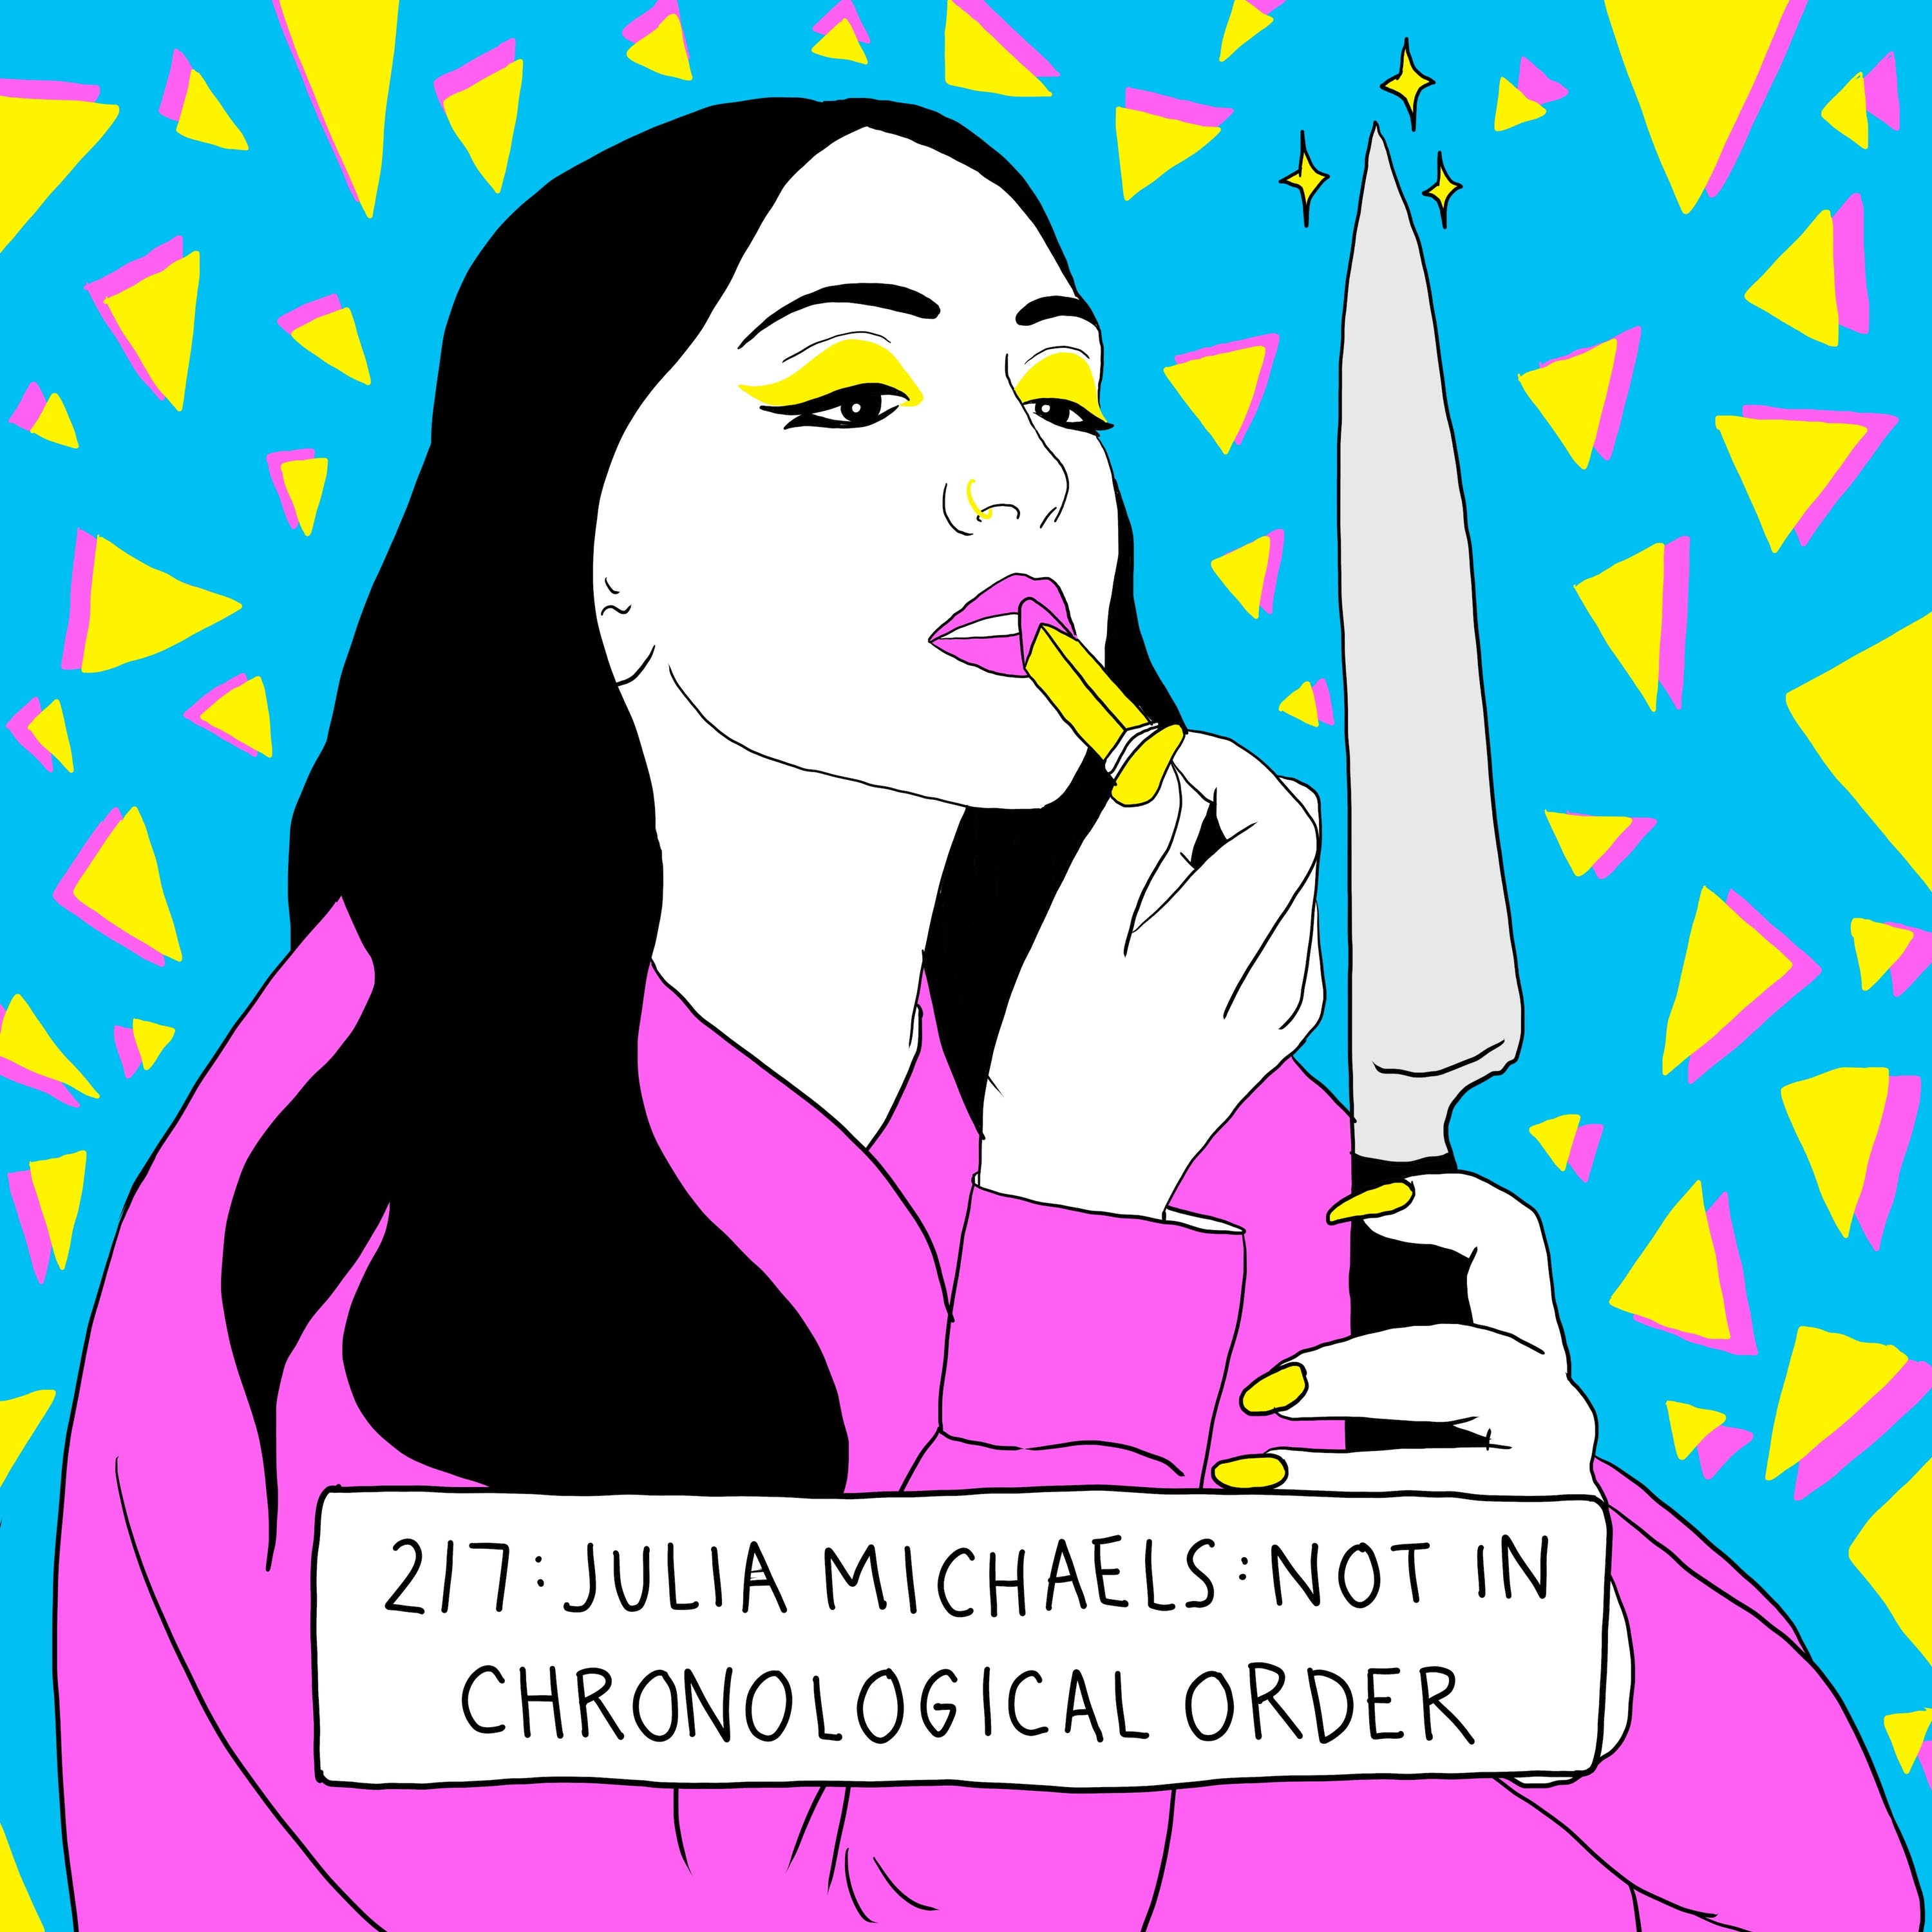 Julia Michaels' Songwriting Superpowers